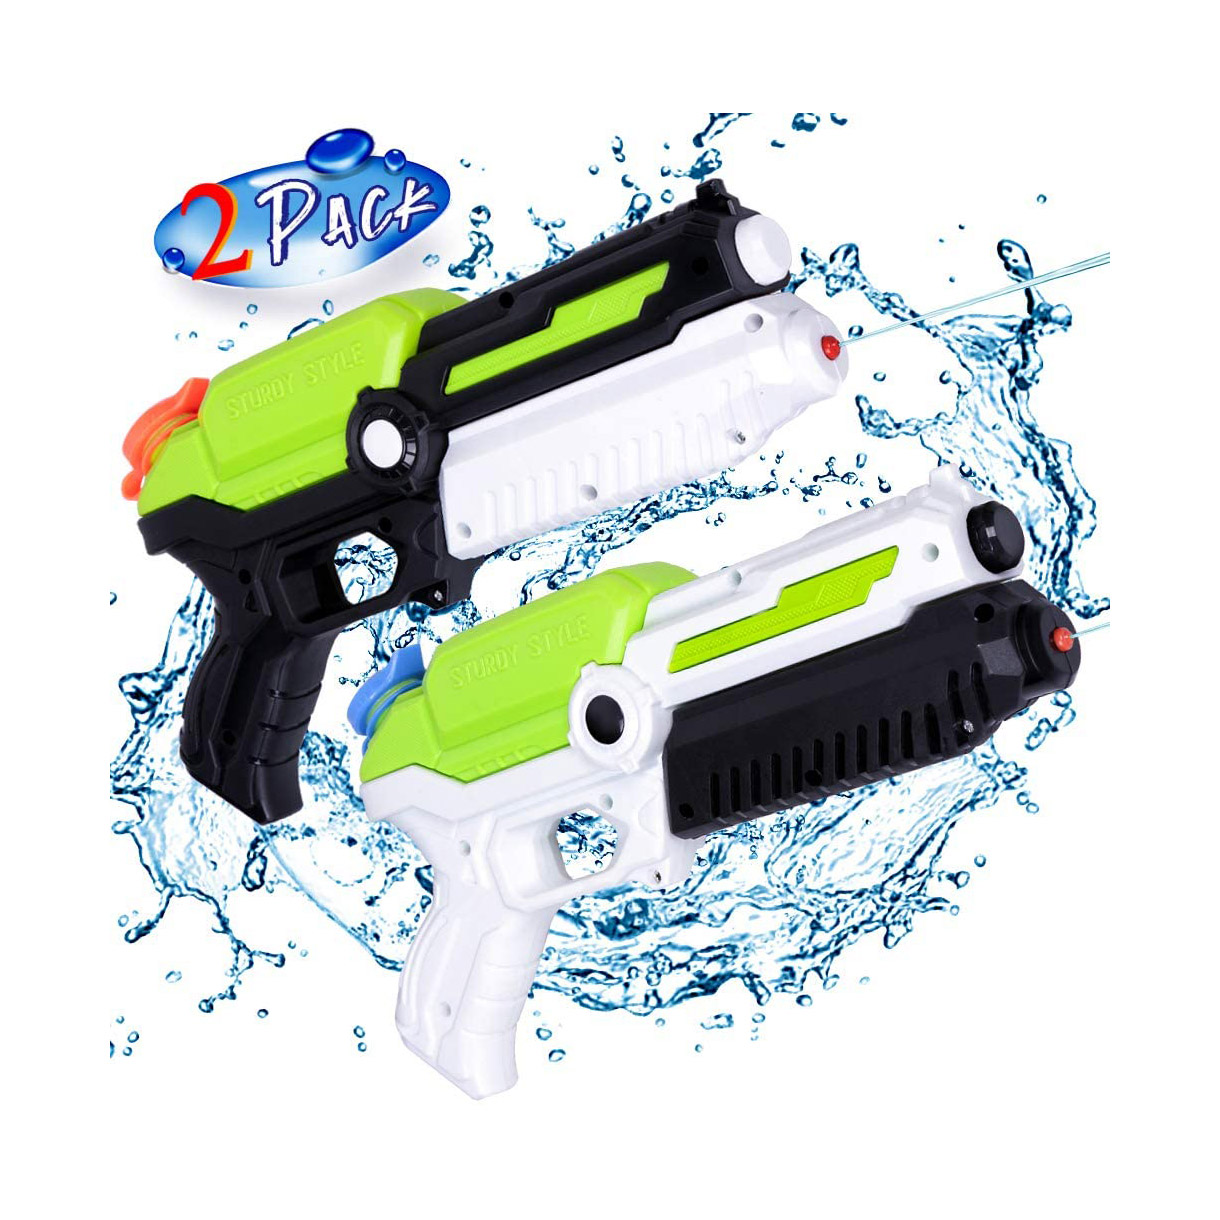 2 Pack Water <strong>Guns</strong> for Kids, Small Water Pistols Squirt <strong>Guns</strong> for Outdoor Summer Fun Water Battle Pool Garden Party, Gifts for Kid